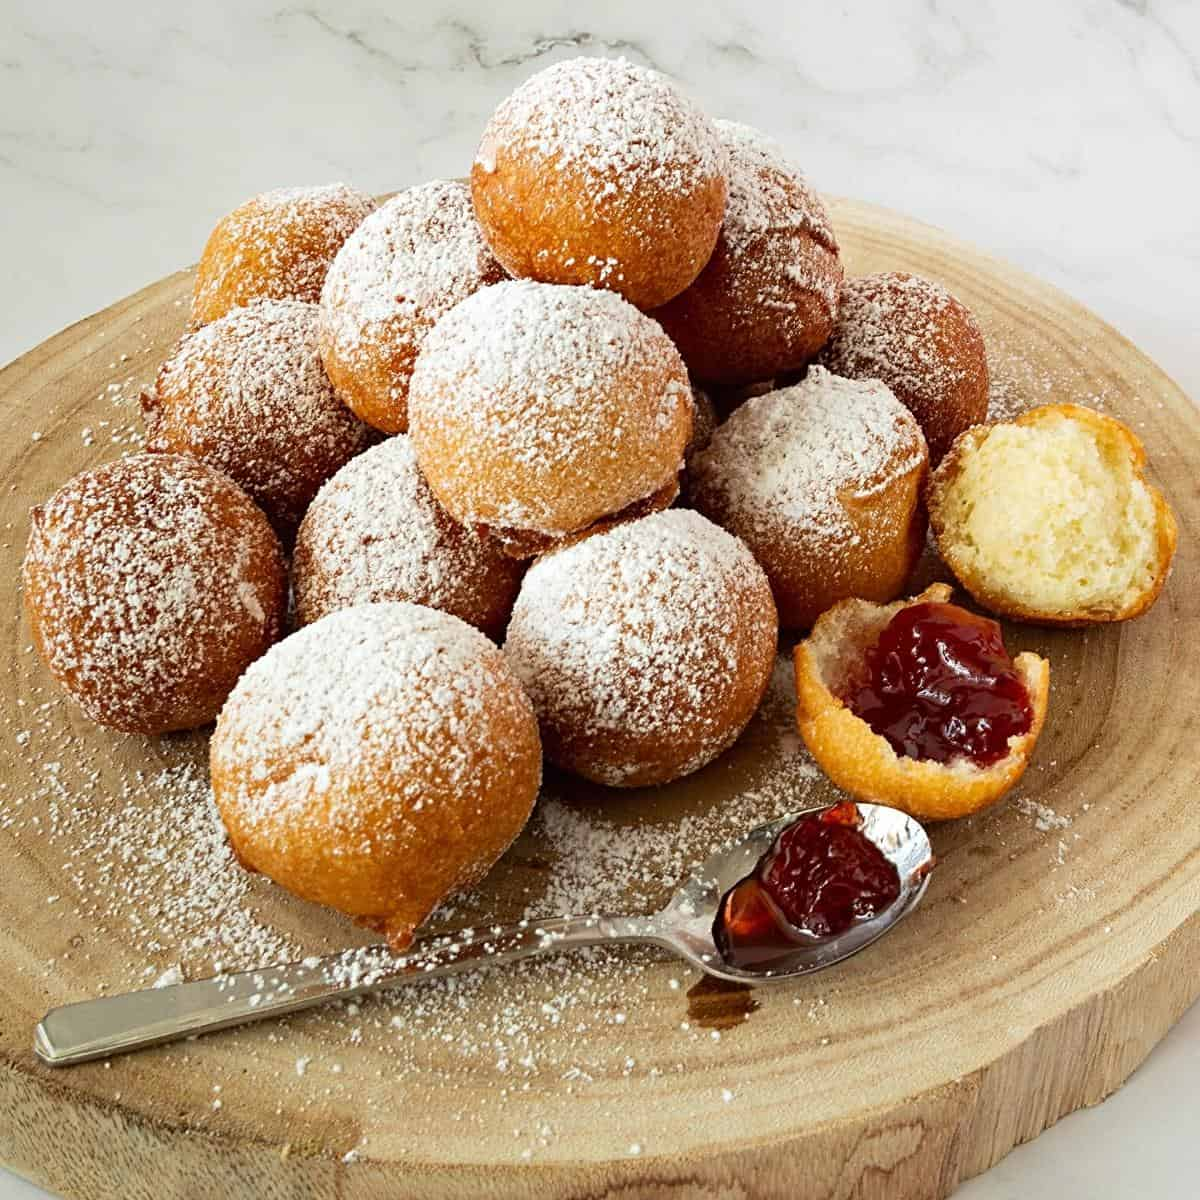 Donut holes on a wooden board.